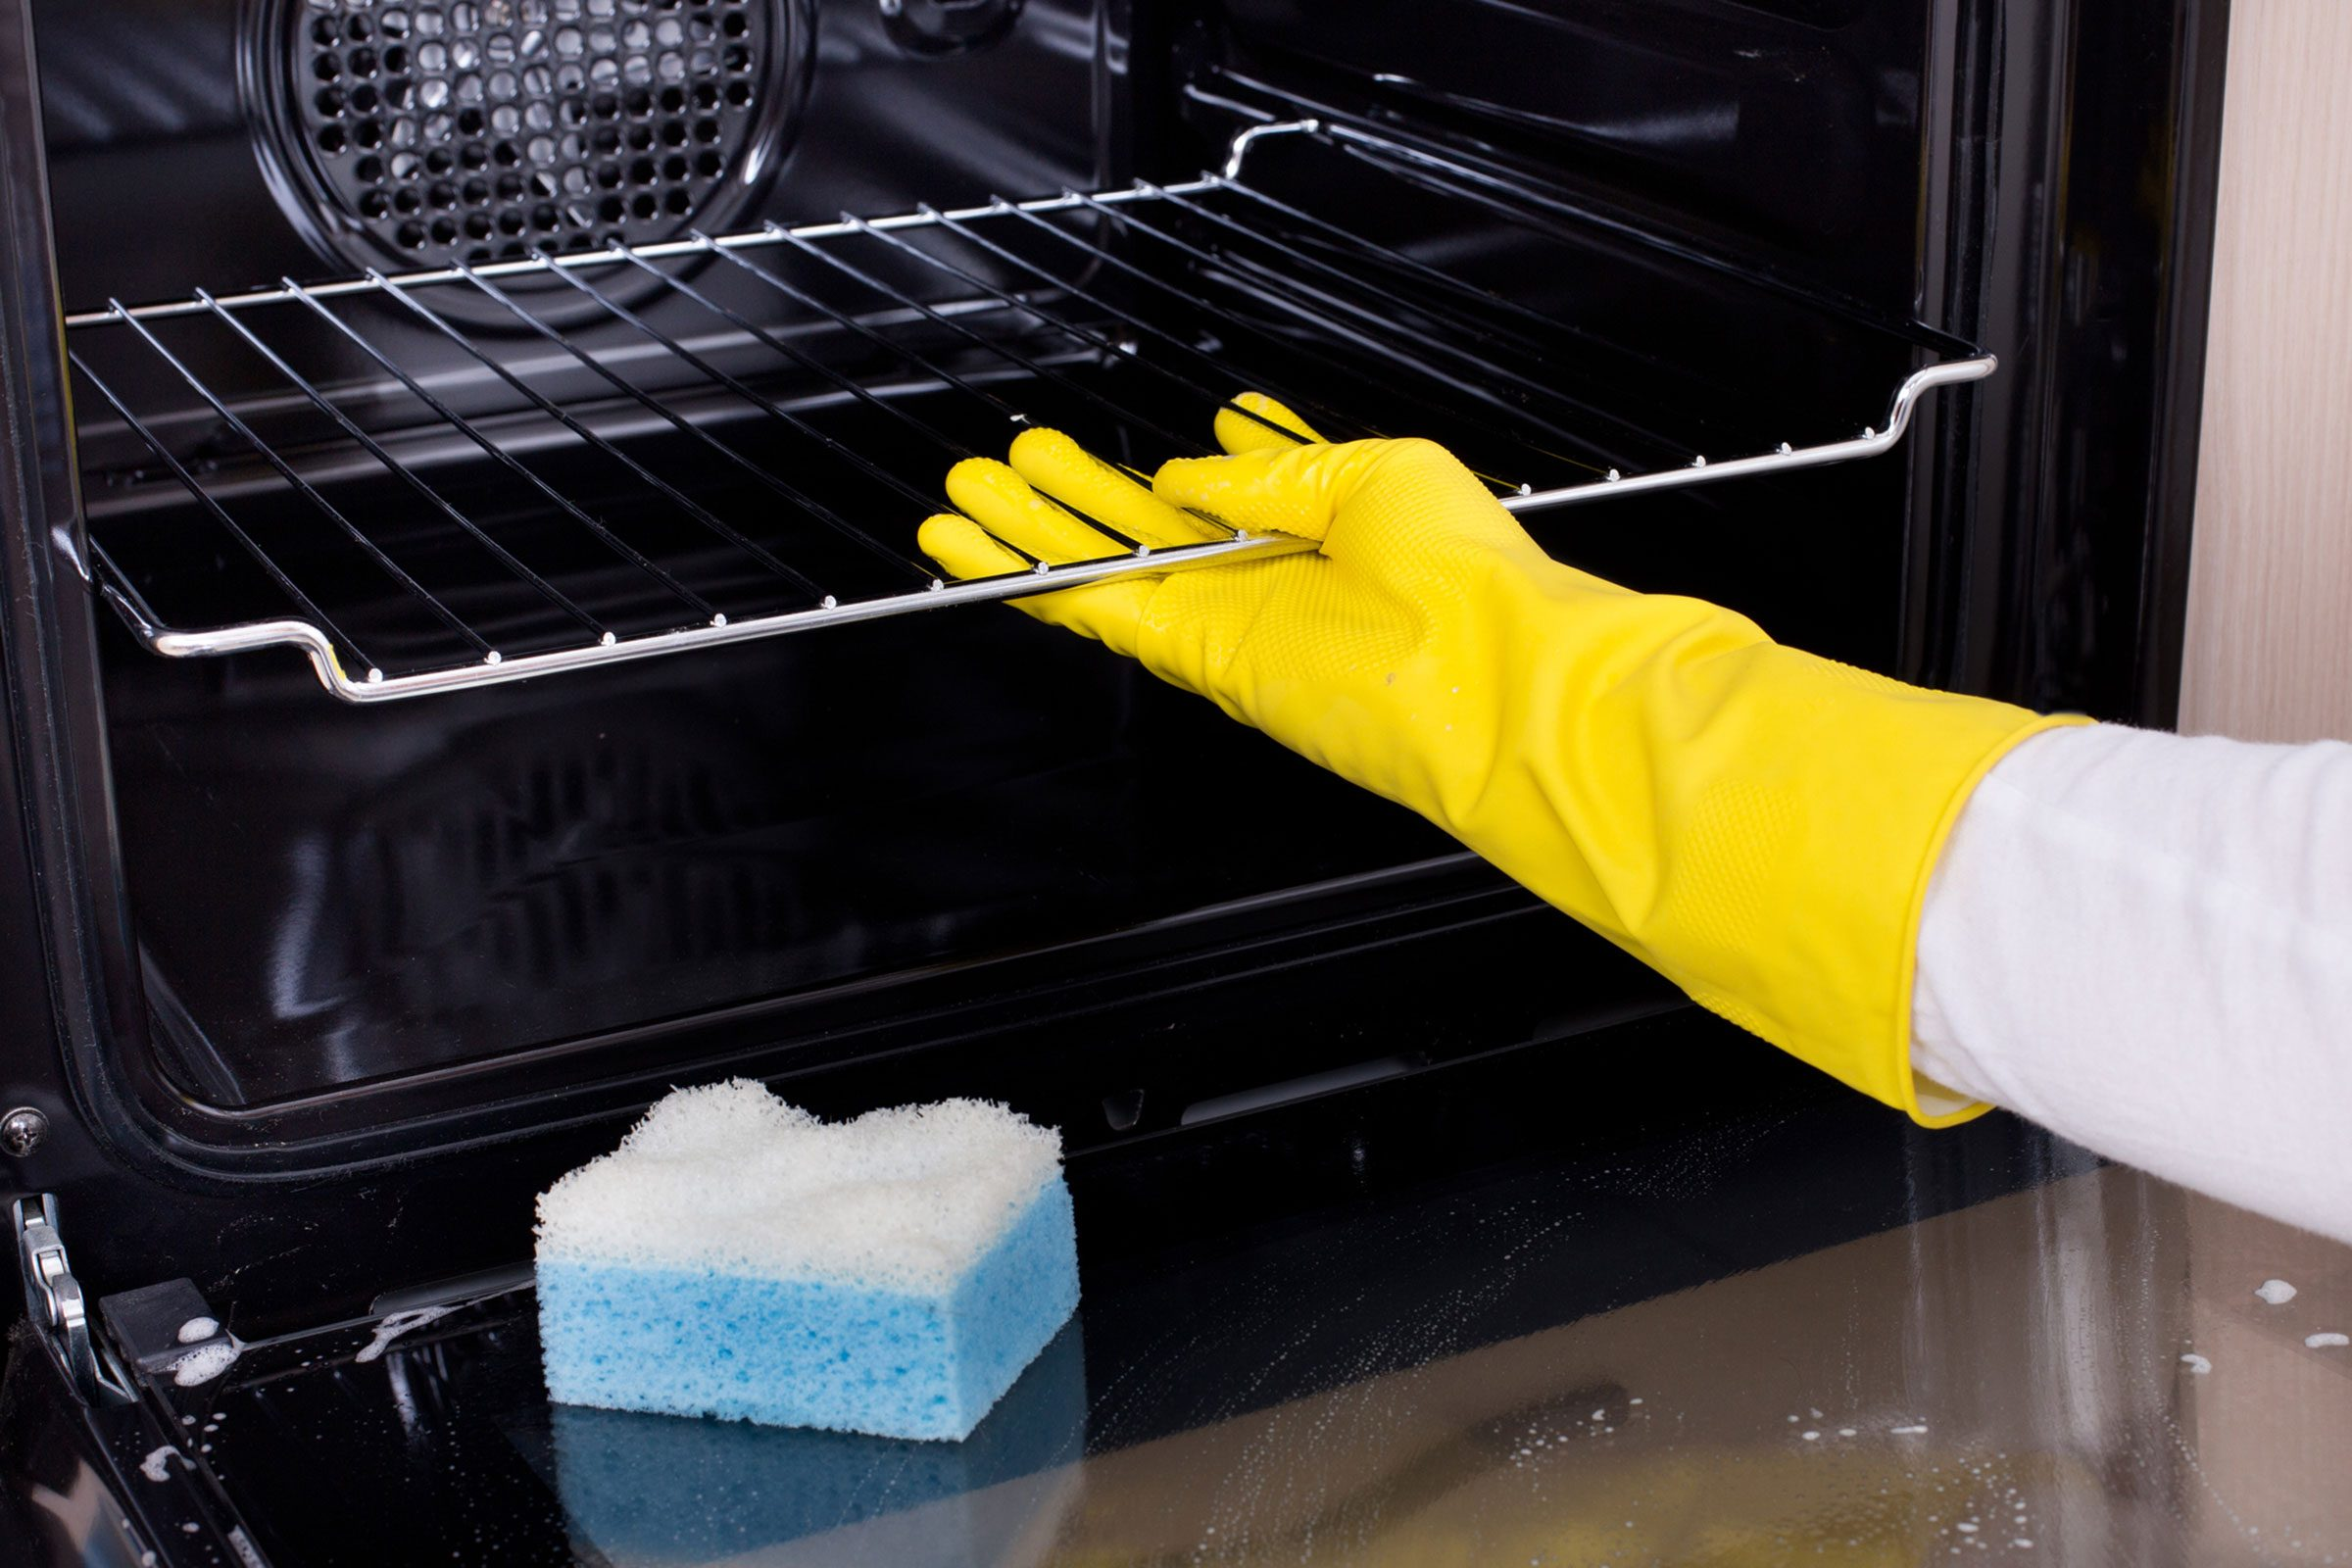 self-cleaning ovens: what to know before using yours | reader's digest